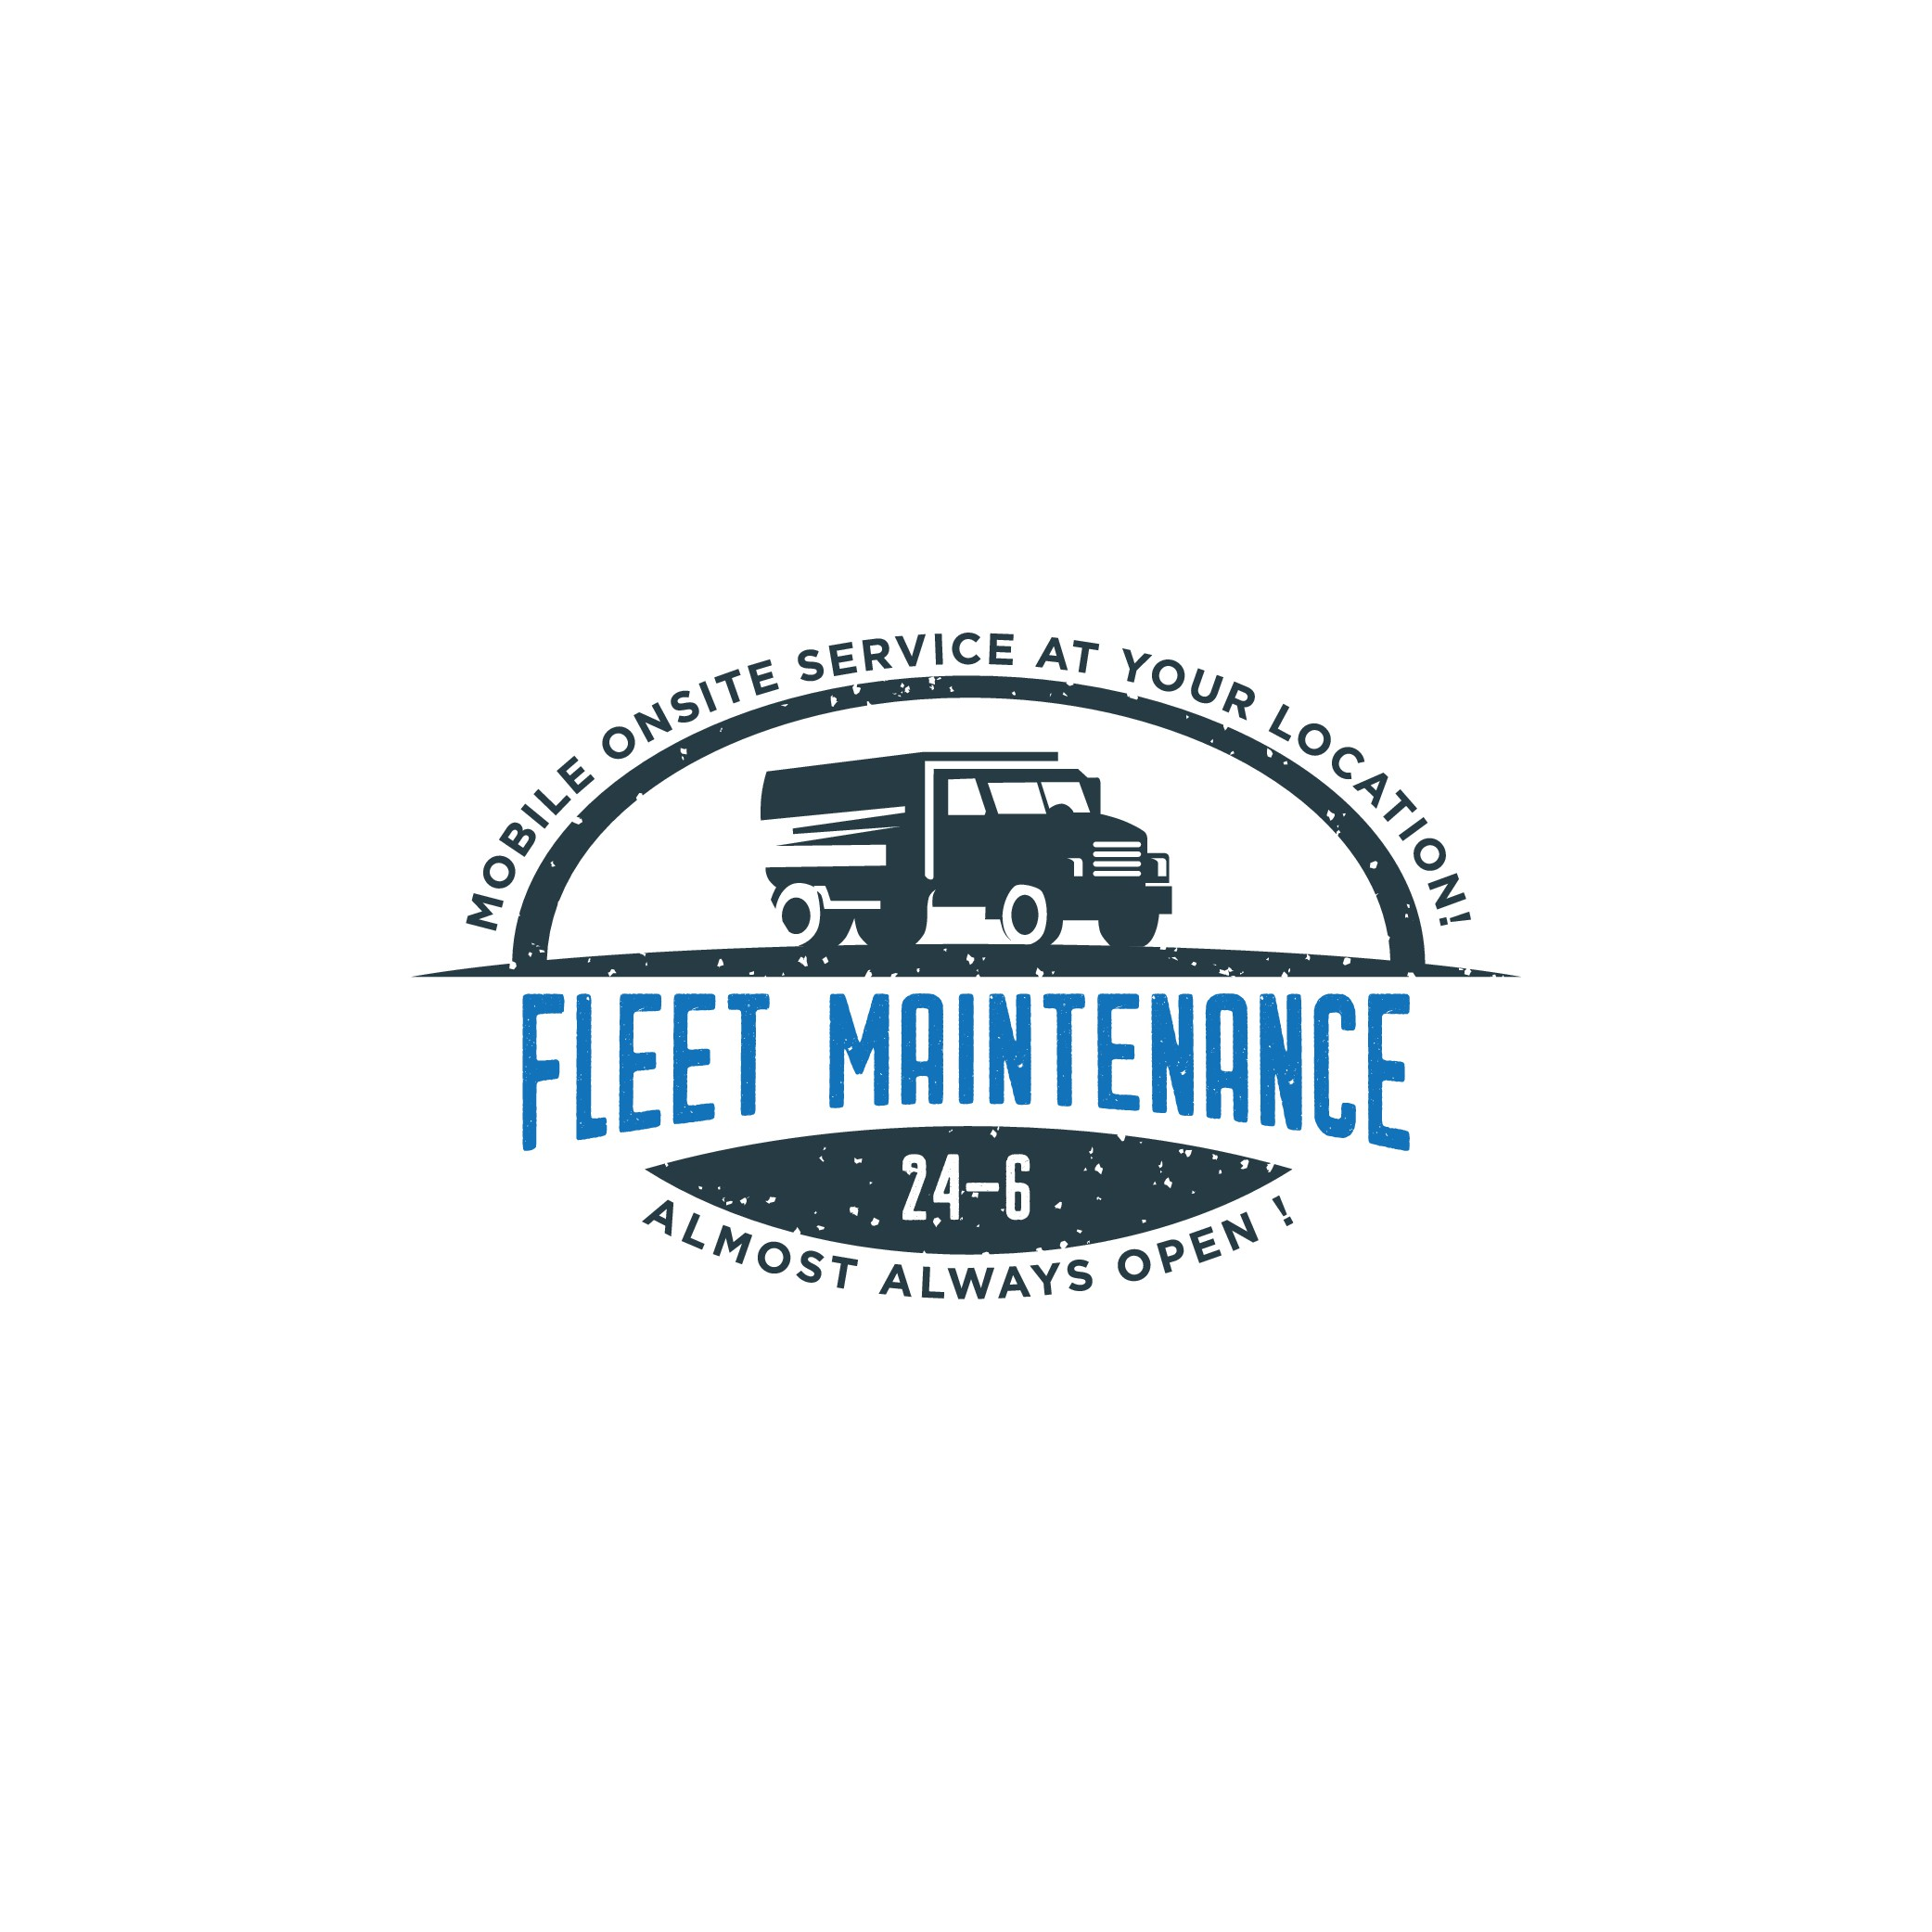 Design a cool logo for our new Mobile Fleet Maintenance Business 24-6  Fleet Maintenance